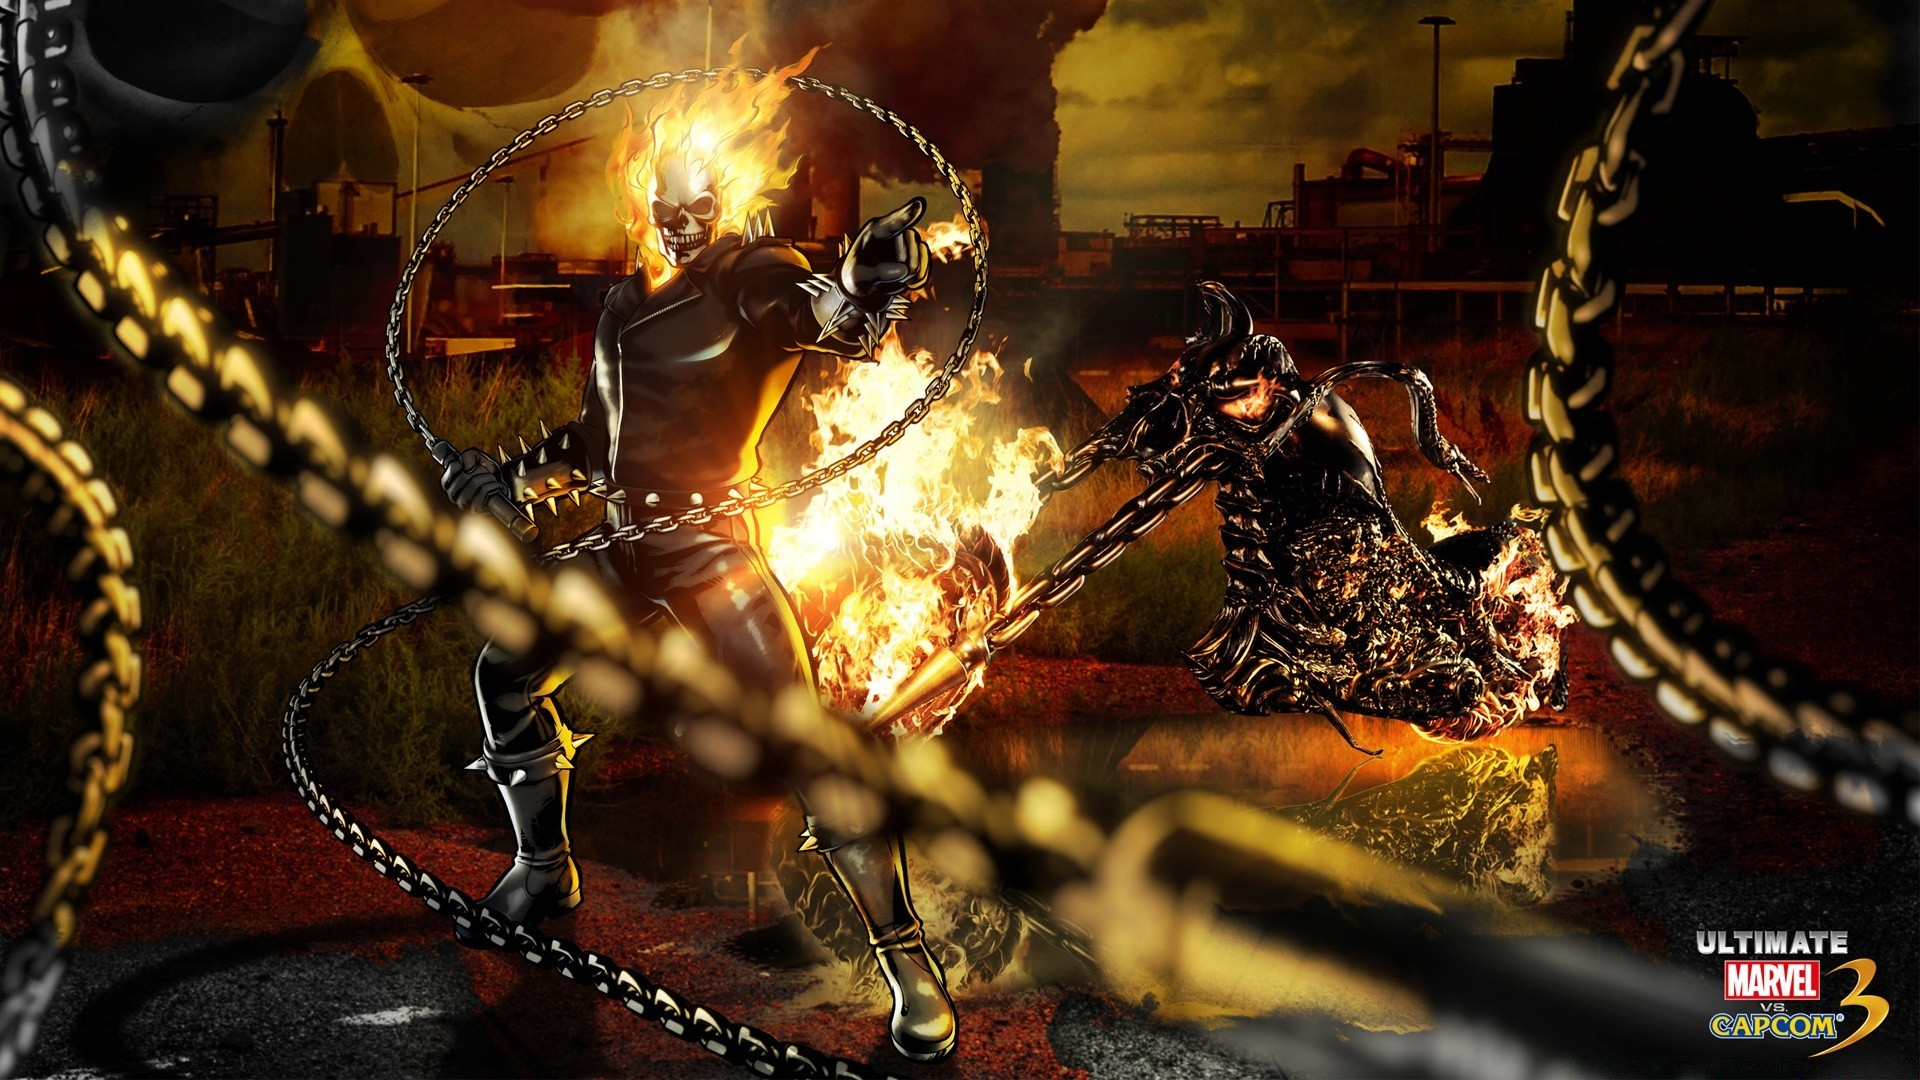 marvel vs capcom 3 - ghost rider. desktop wallpapers for free.